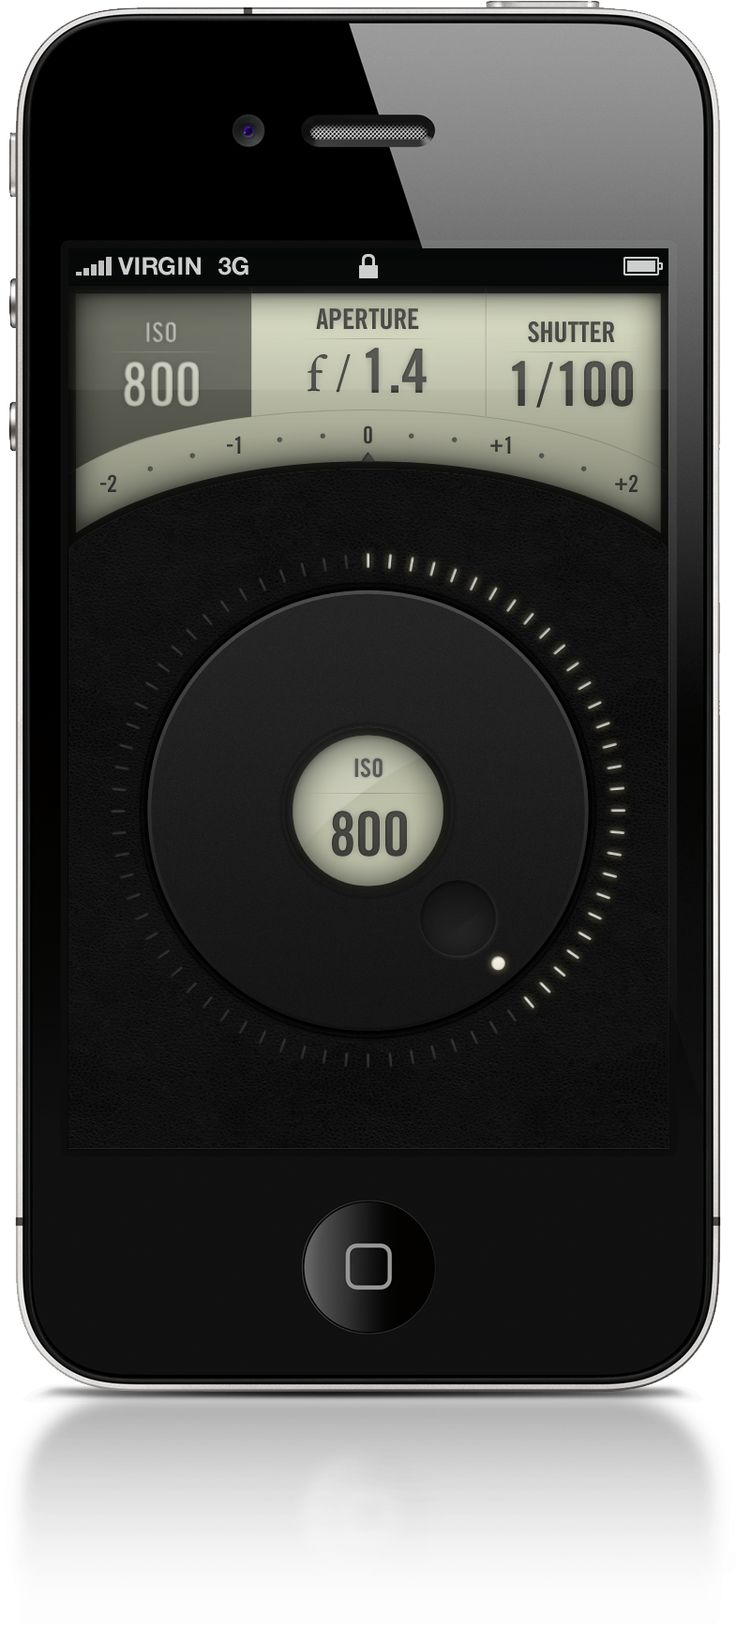 Canon iPhone app | Designer: Jeremey Fleischer. Retro beautifully reworked for new technology. I'd love to see more dials and knobs on touchscreens.